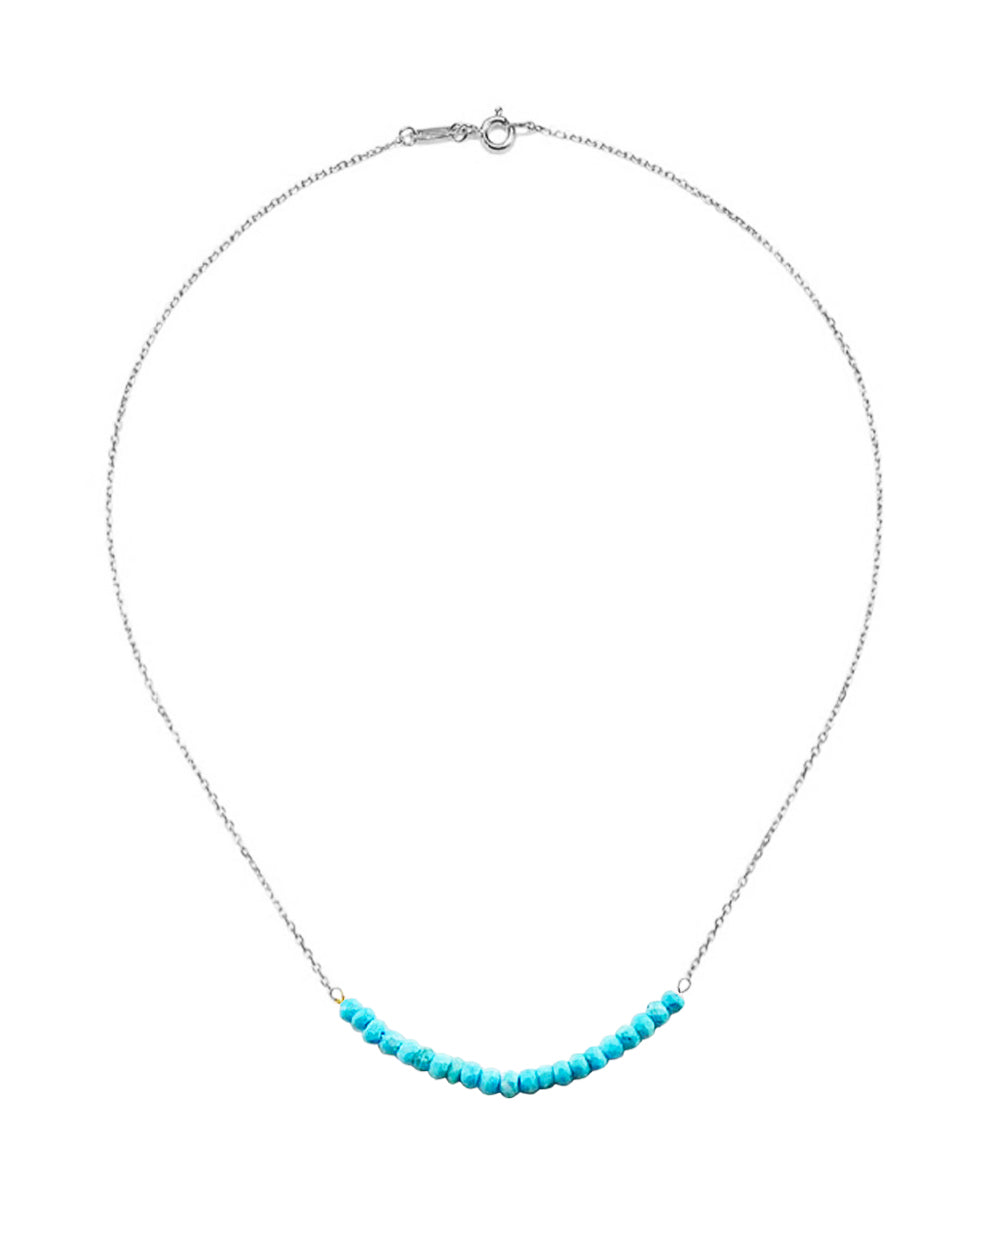 Arise Turquoise Bar Necklace